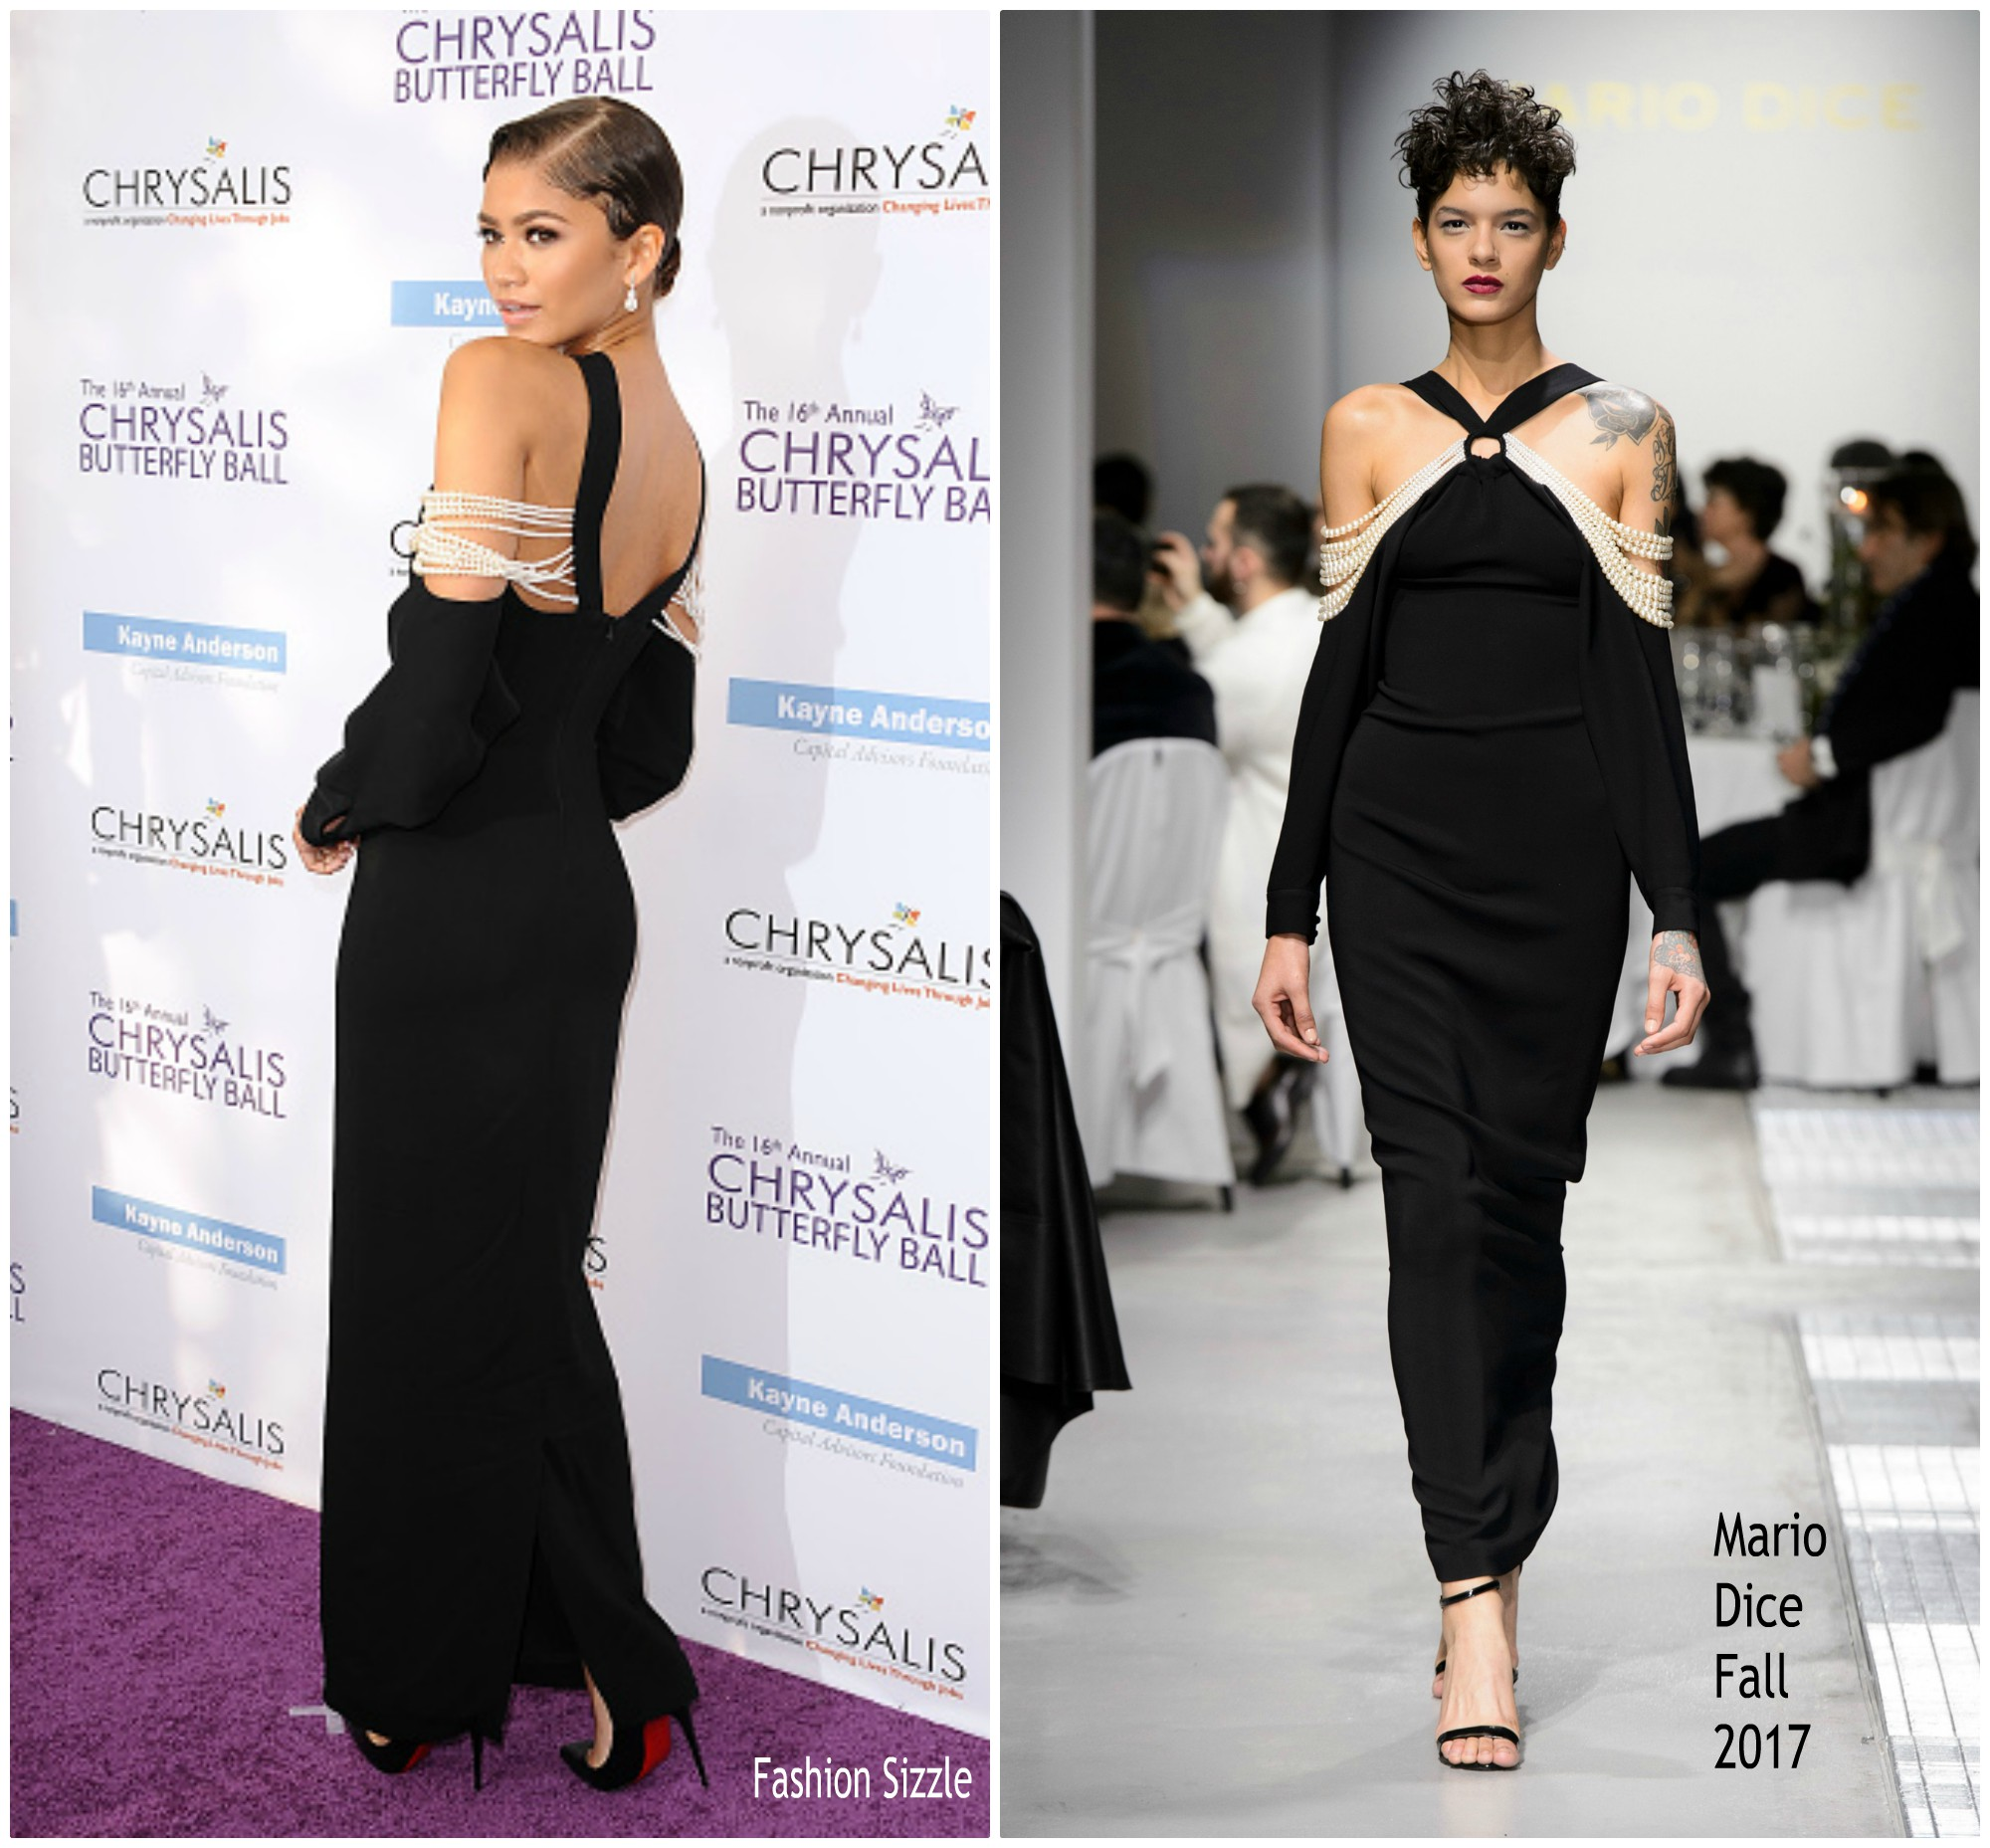 zendaya-coleman-in-mario-dice-16th-annual-chrysalis-butterfly-ball